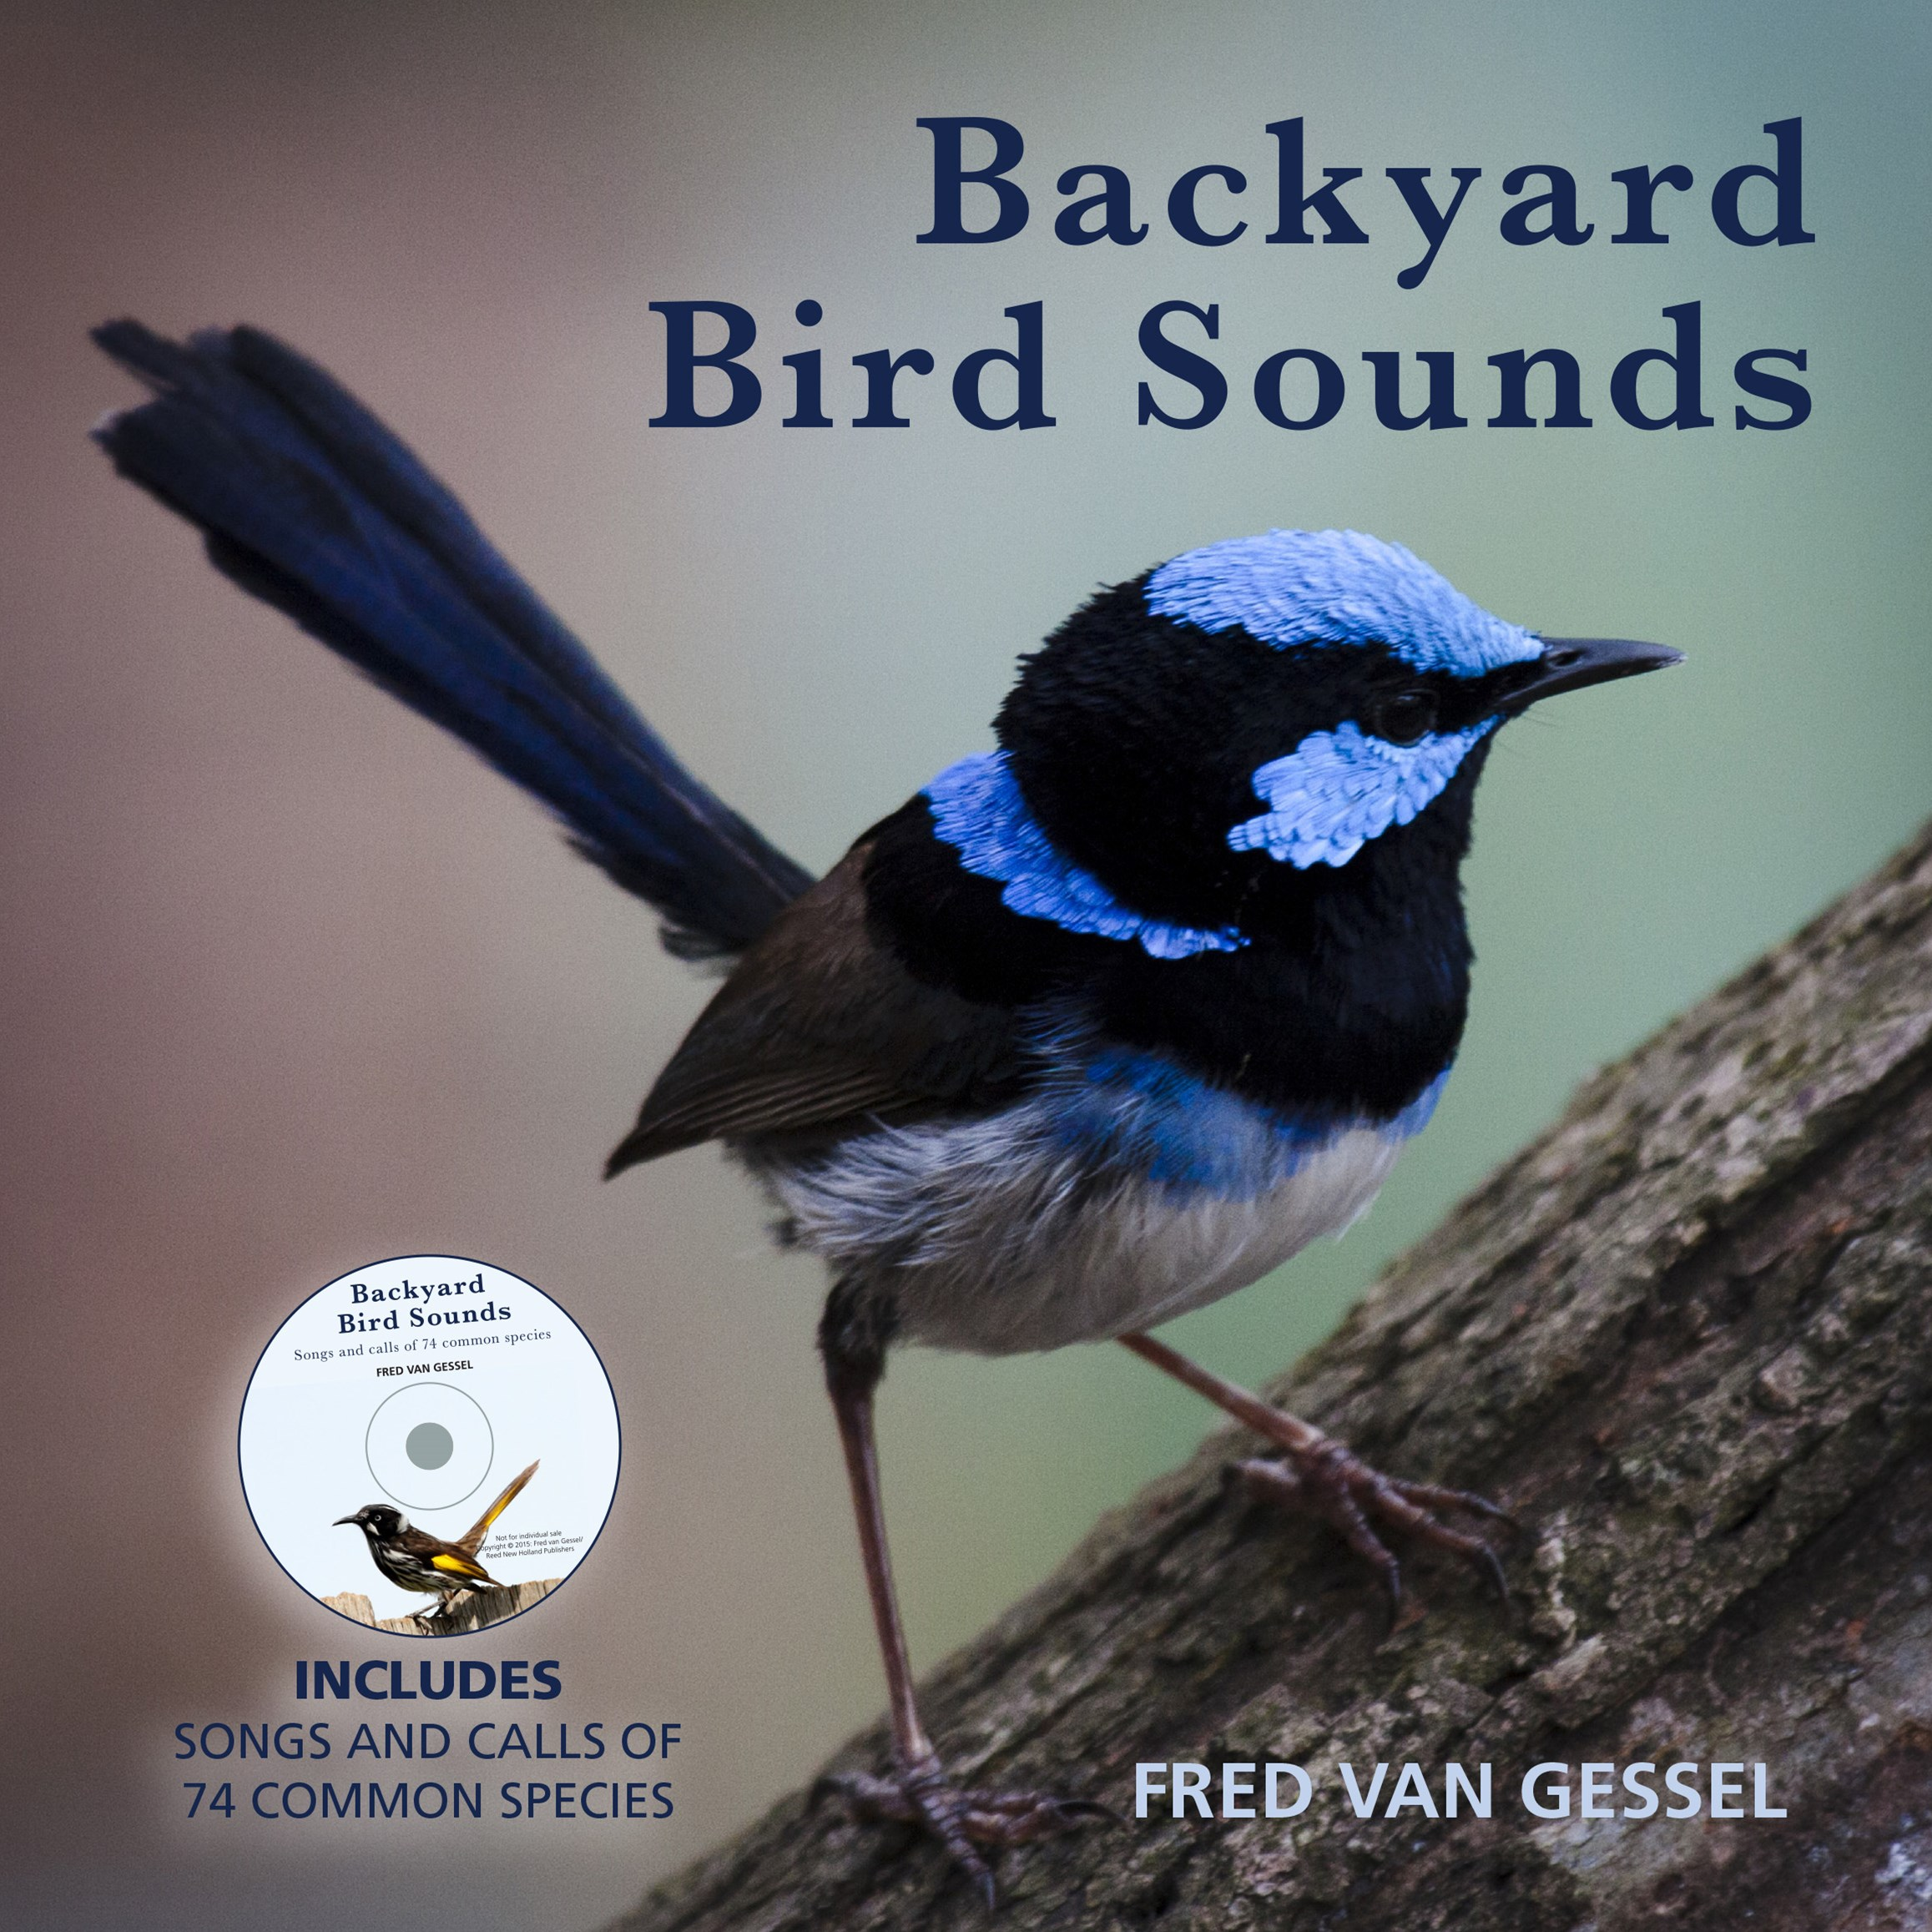 Backyard Bird Sounds with CD